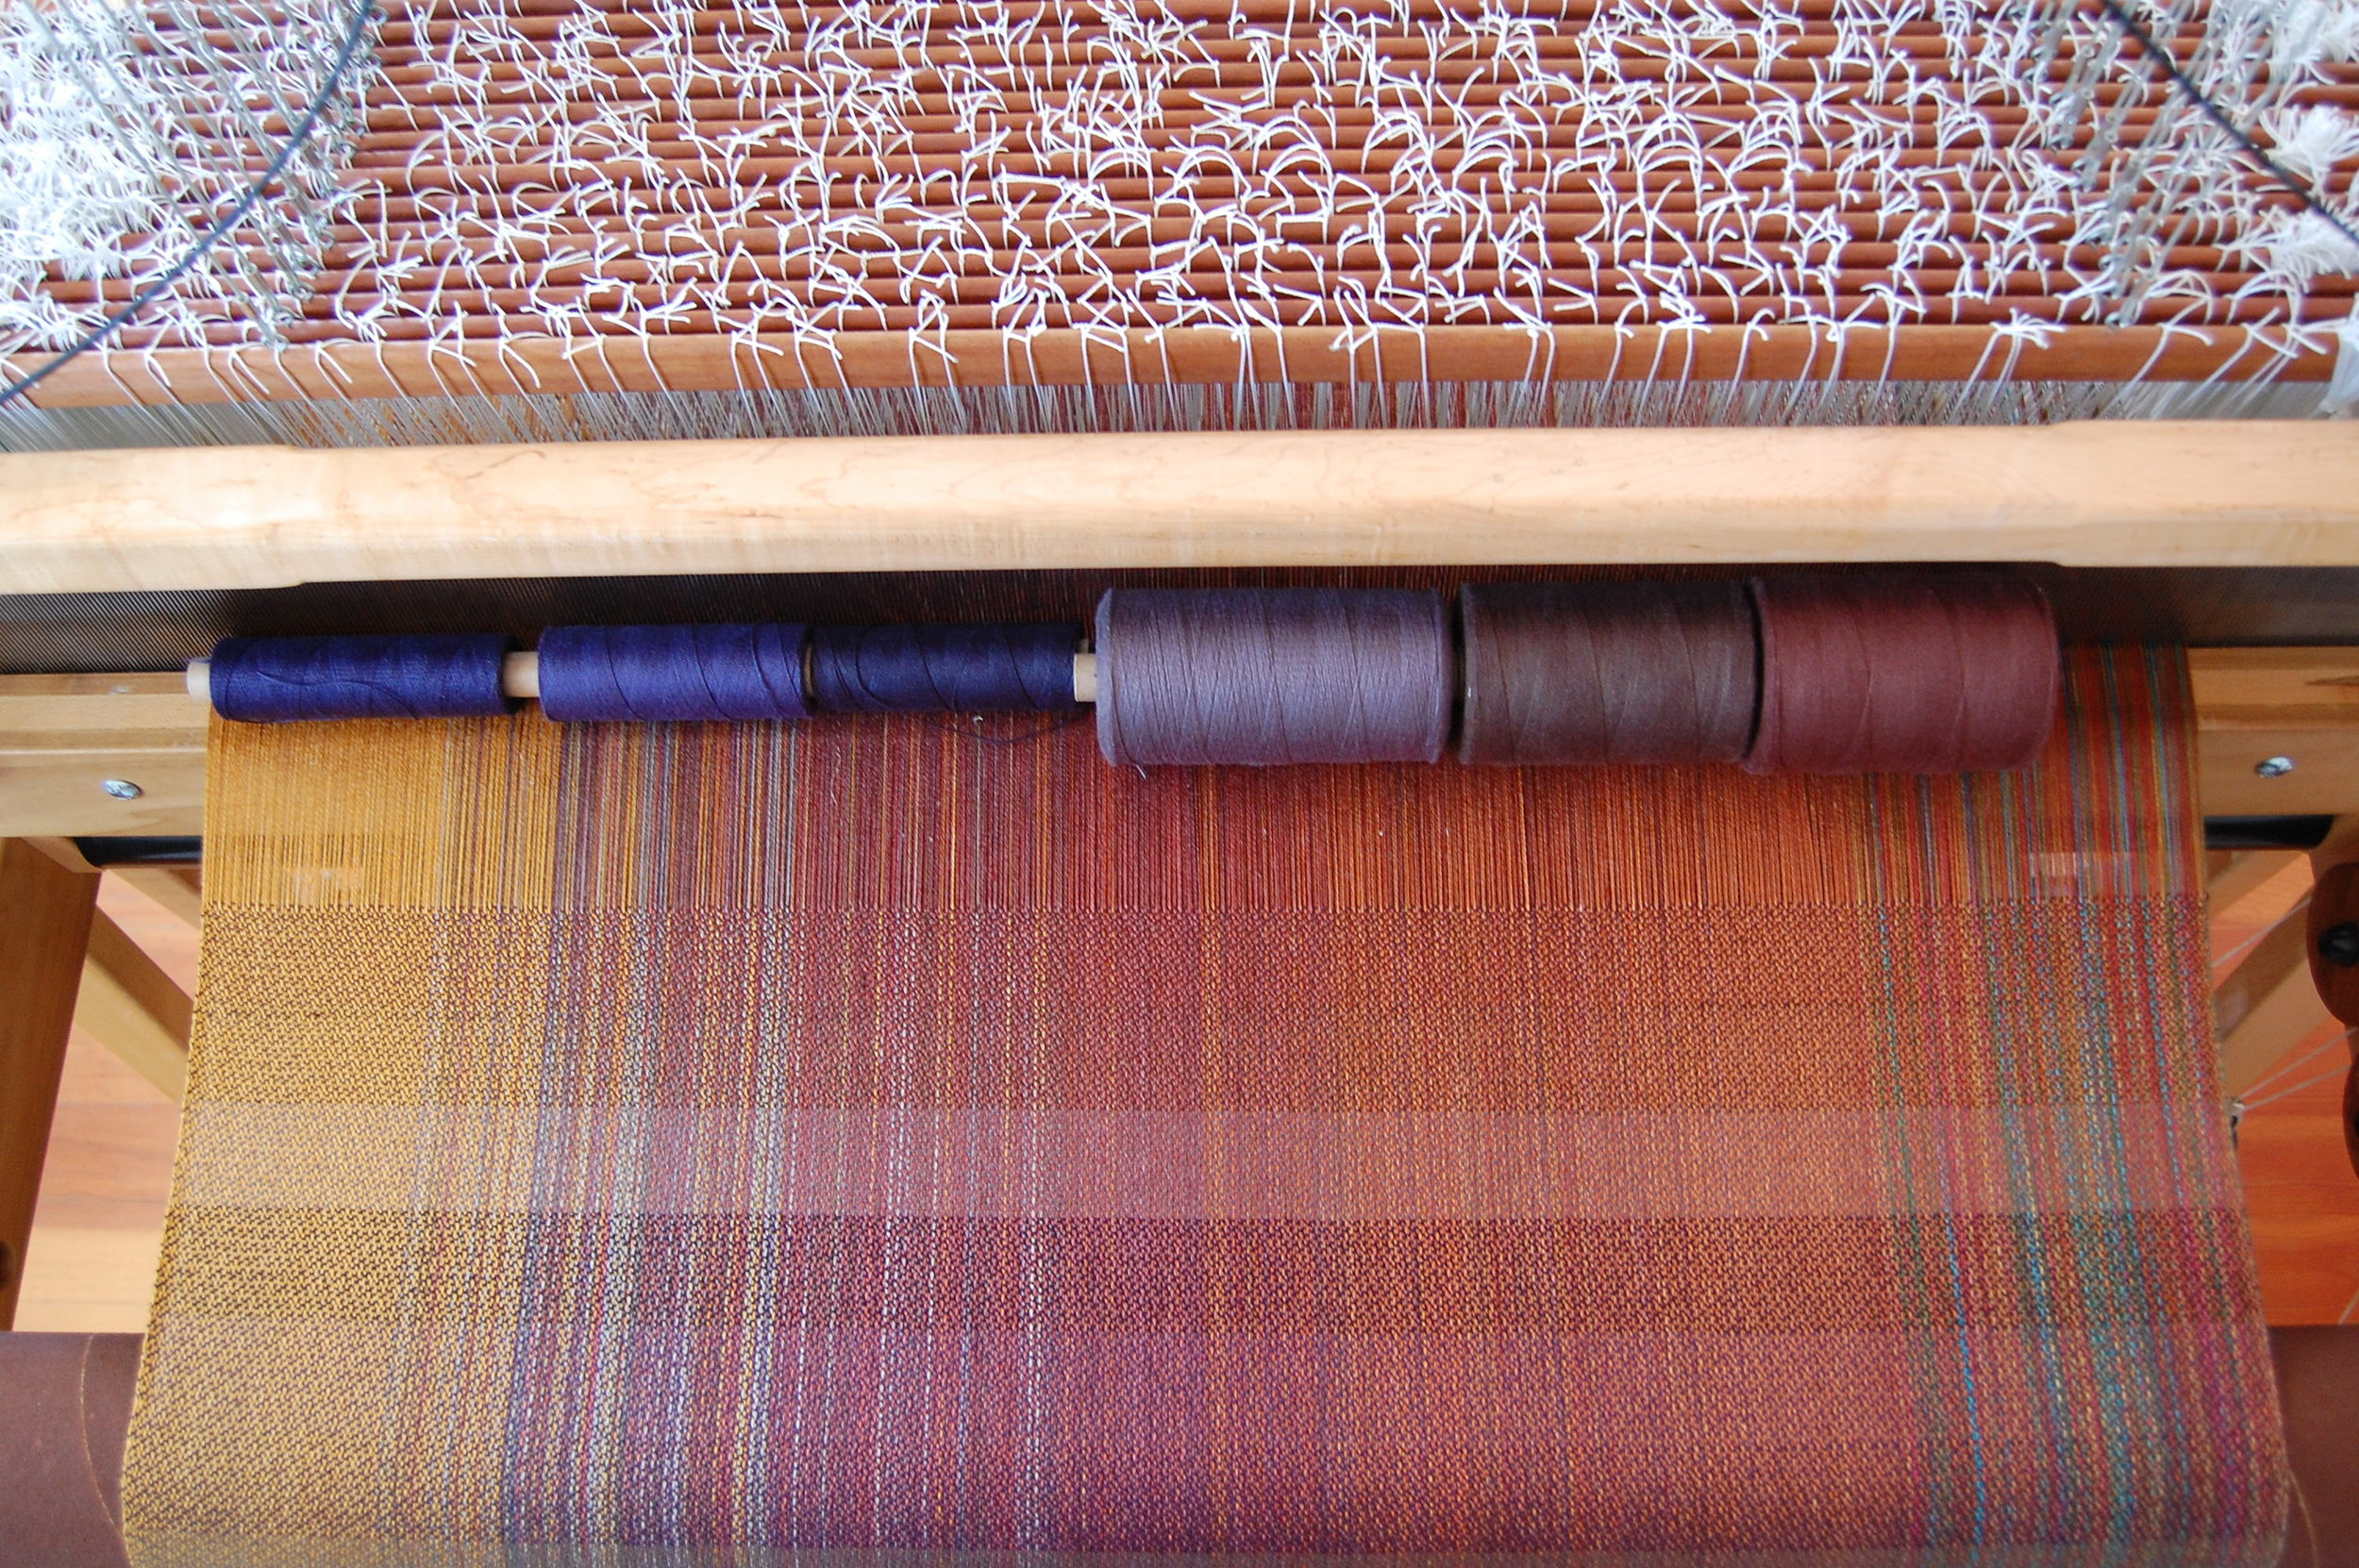 blue, grey and brown cottons